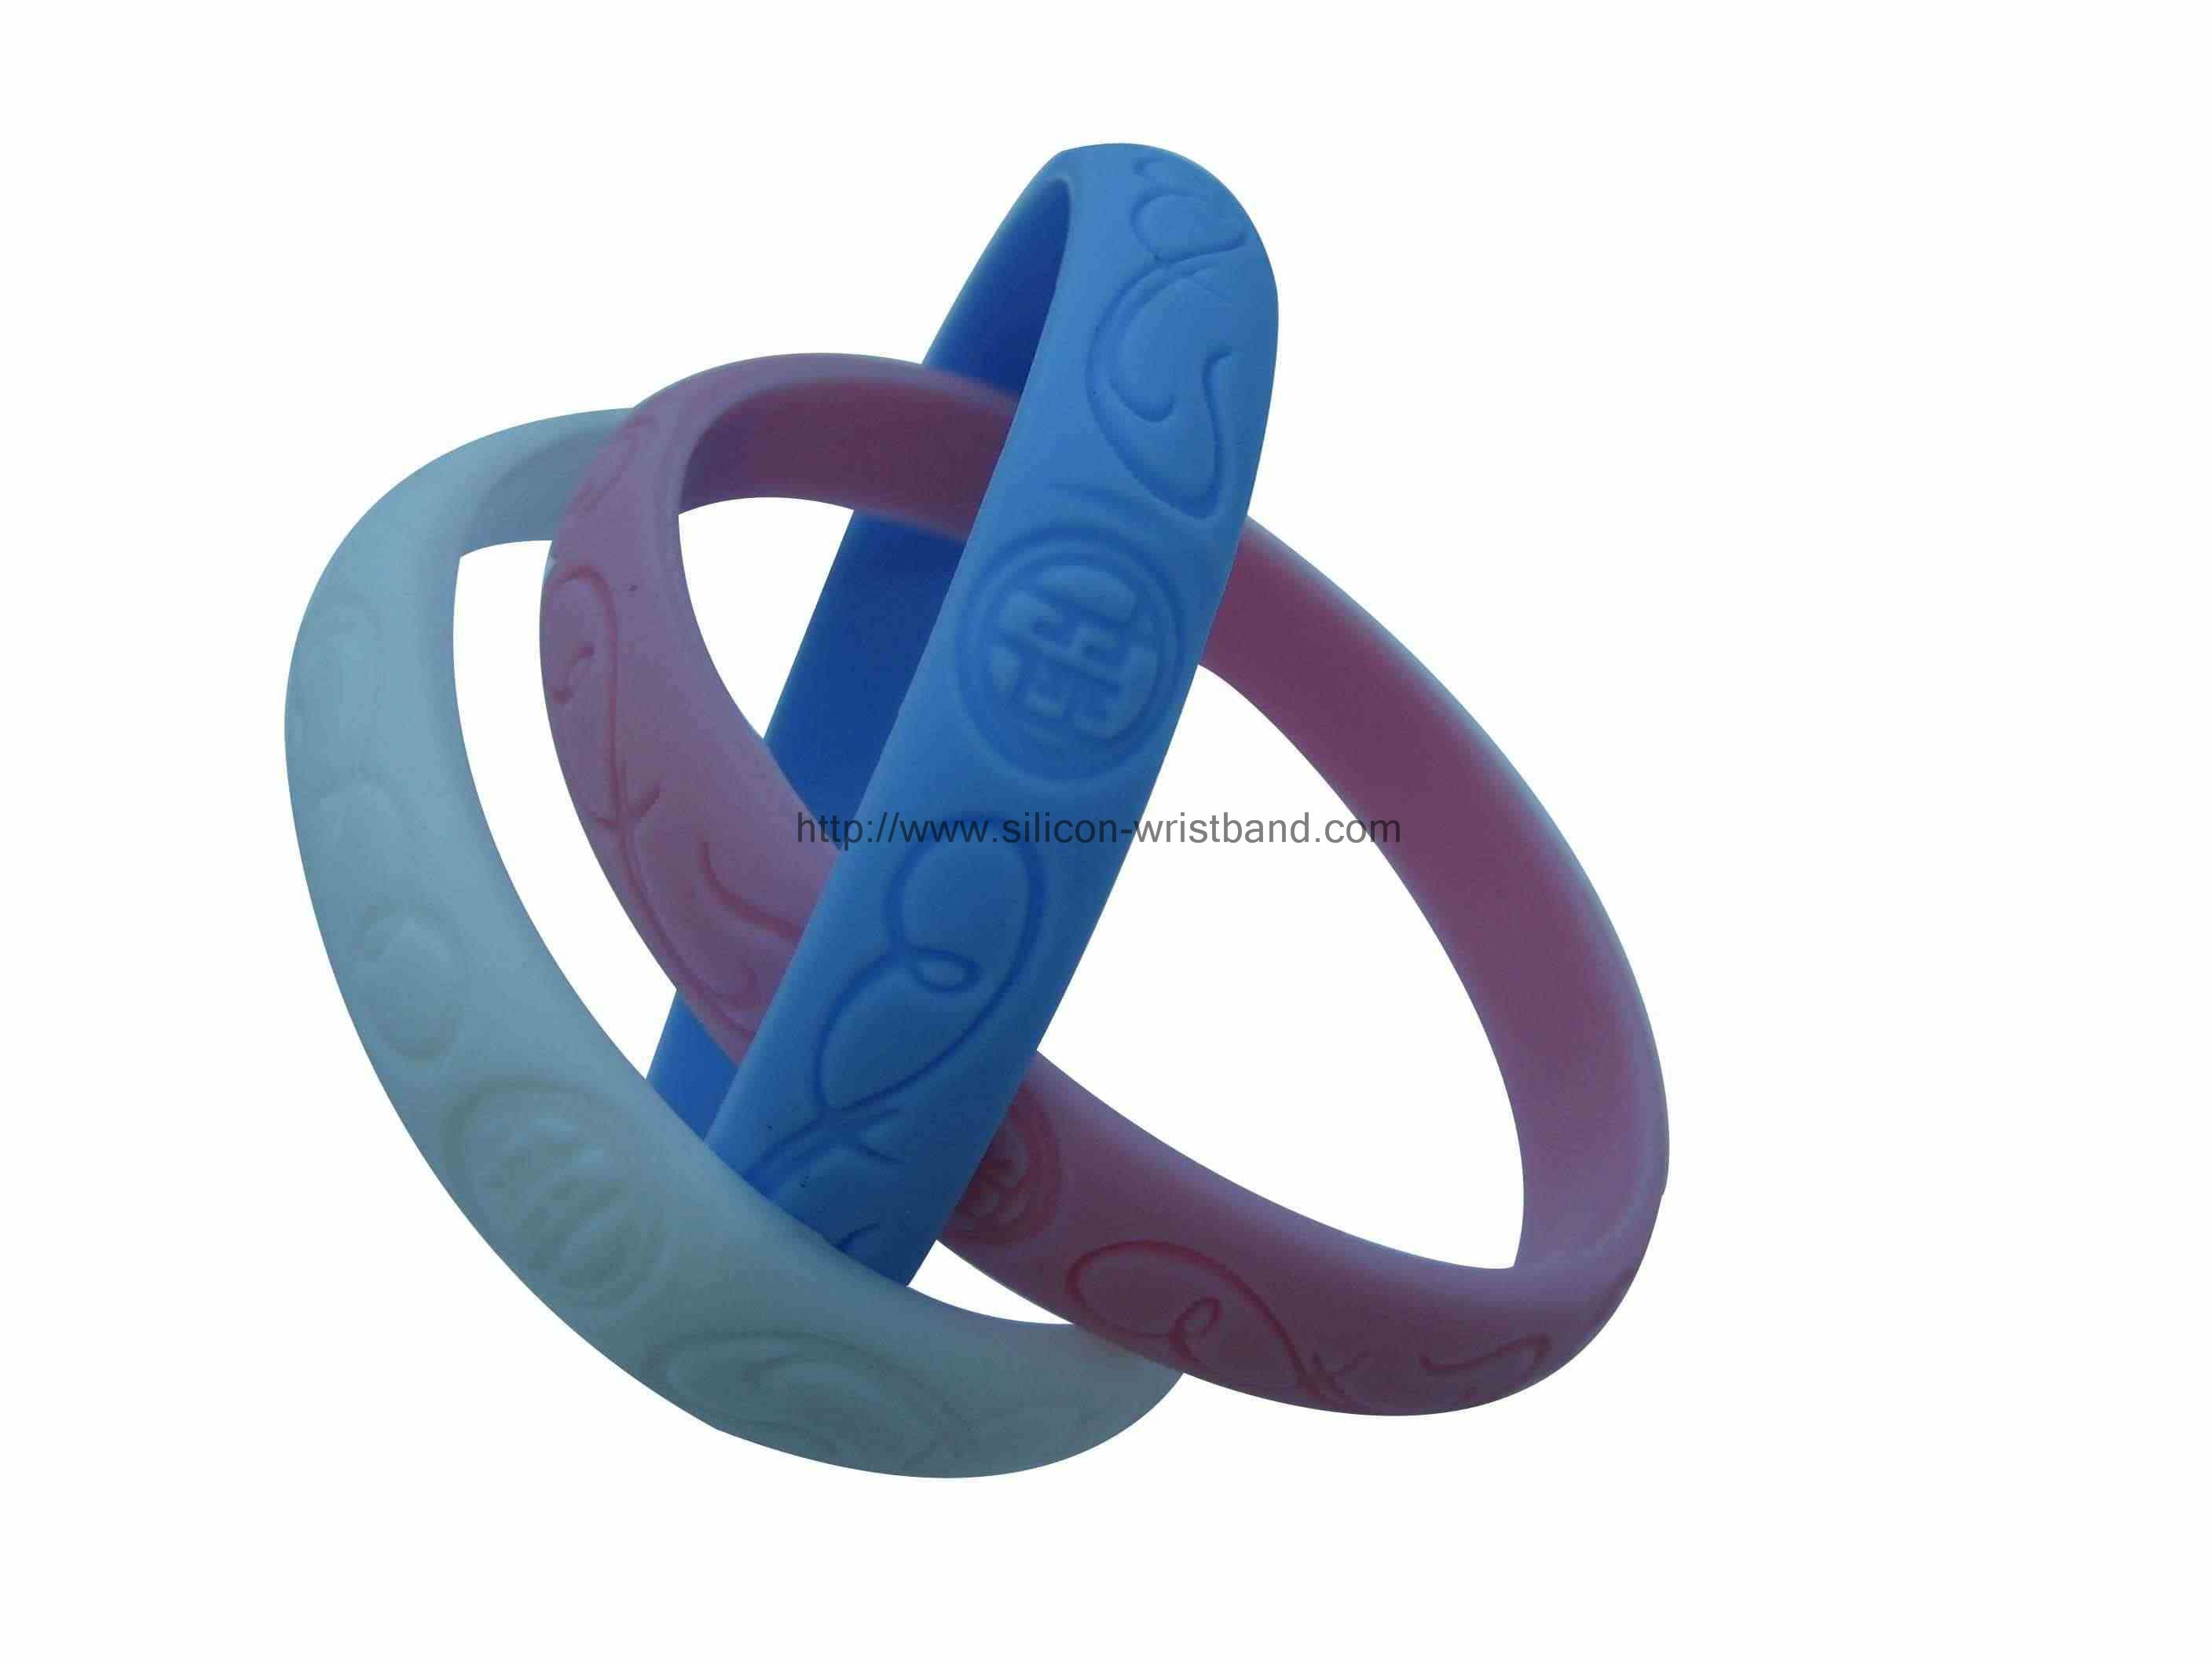 print your own wristbands